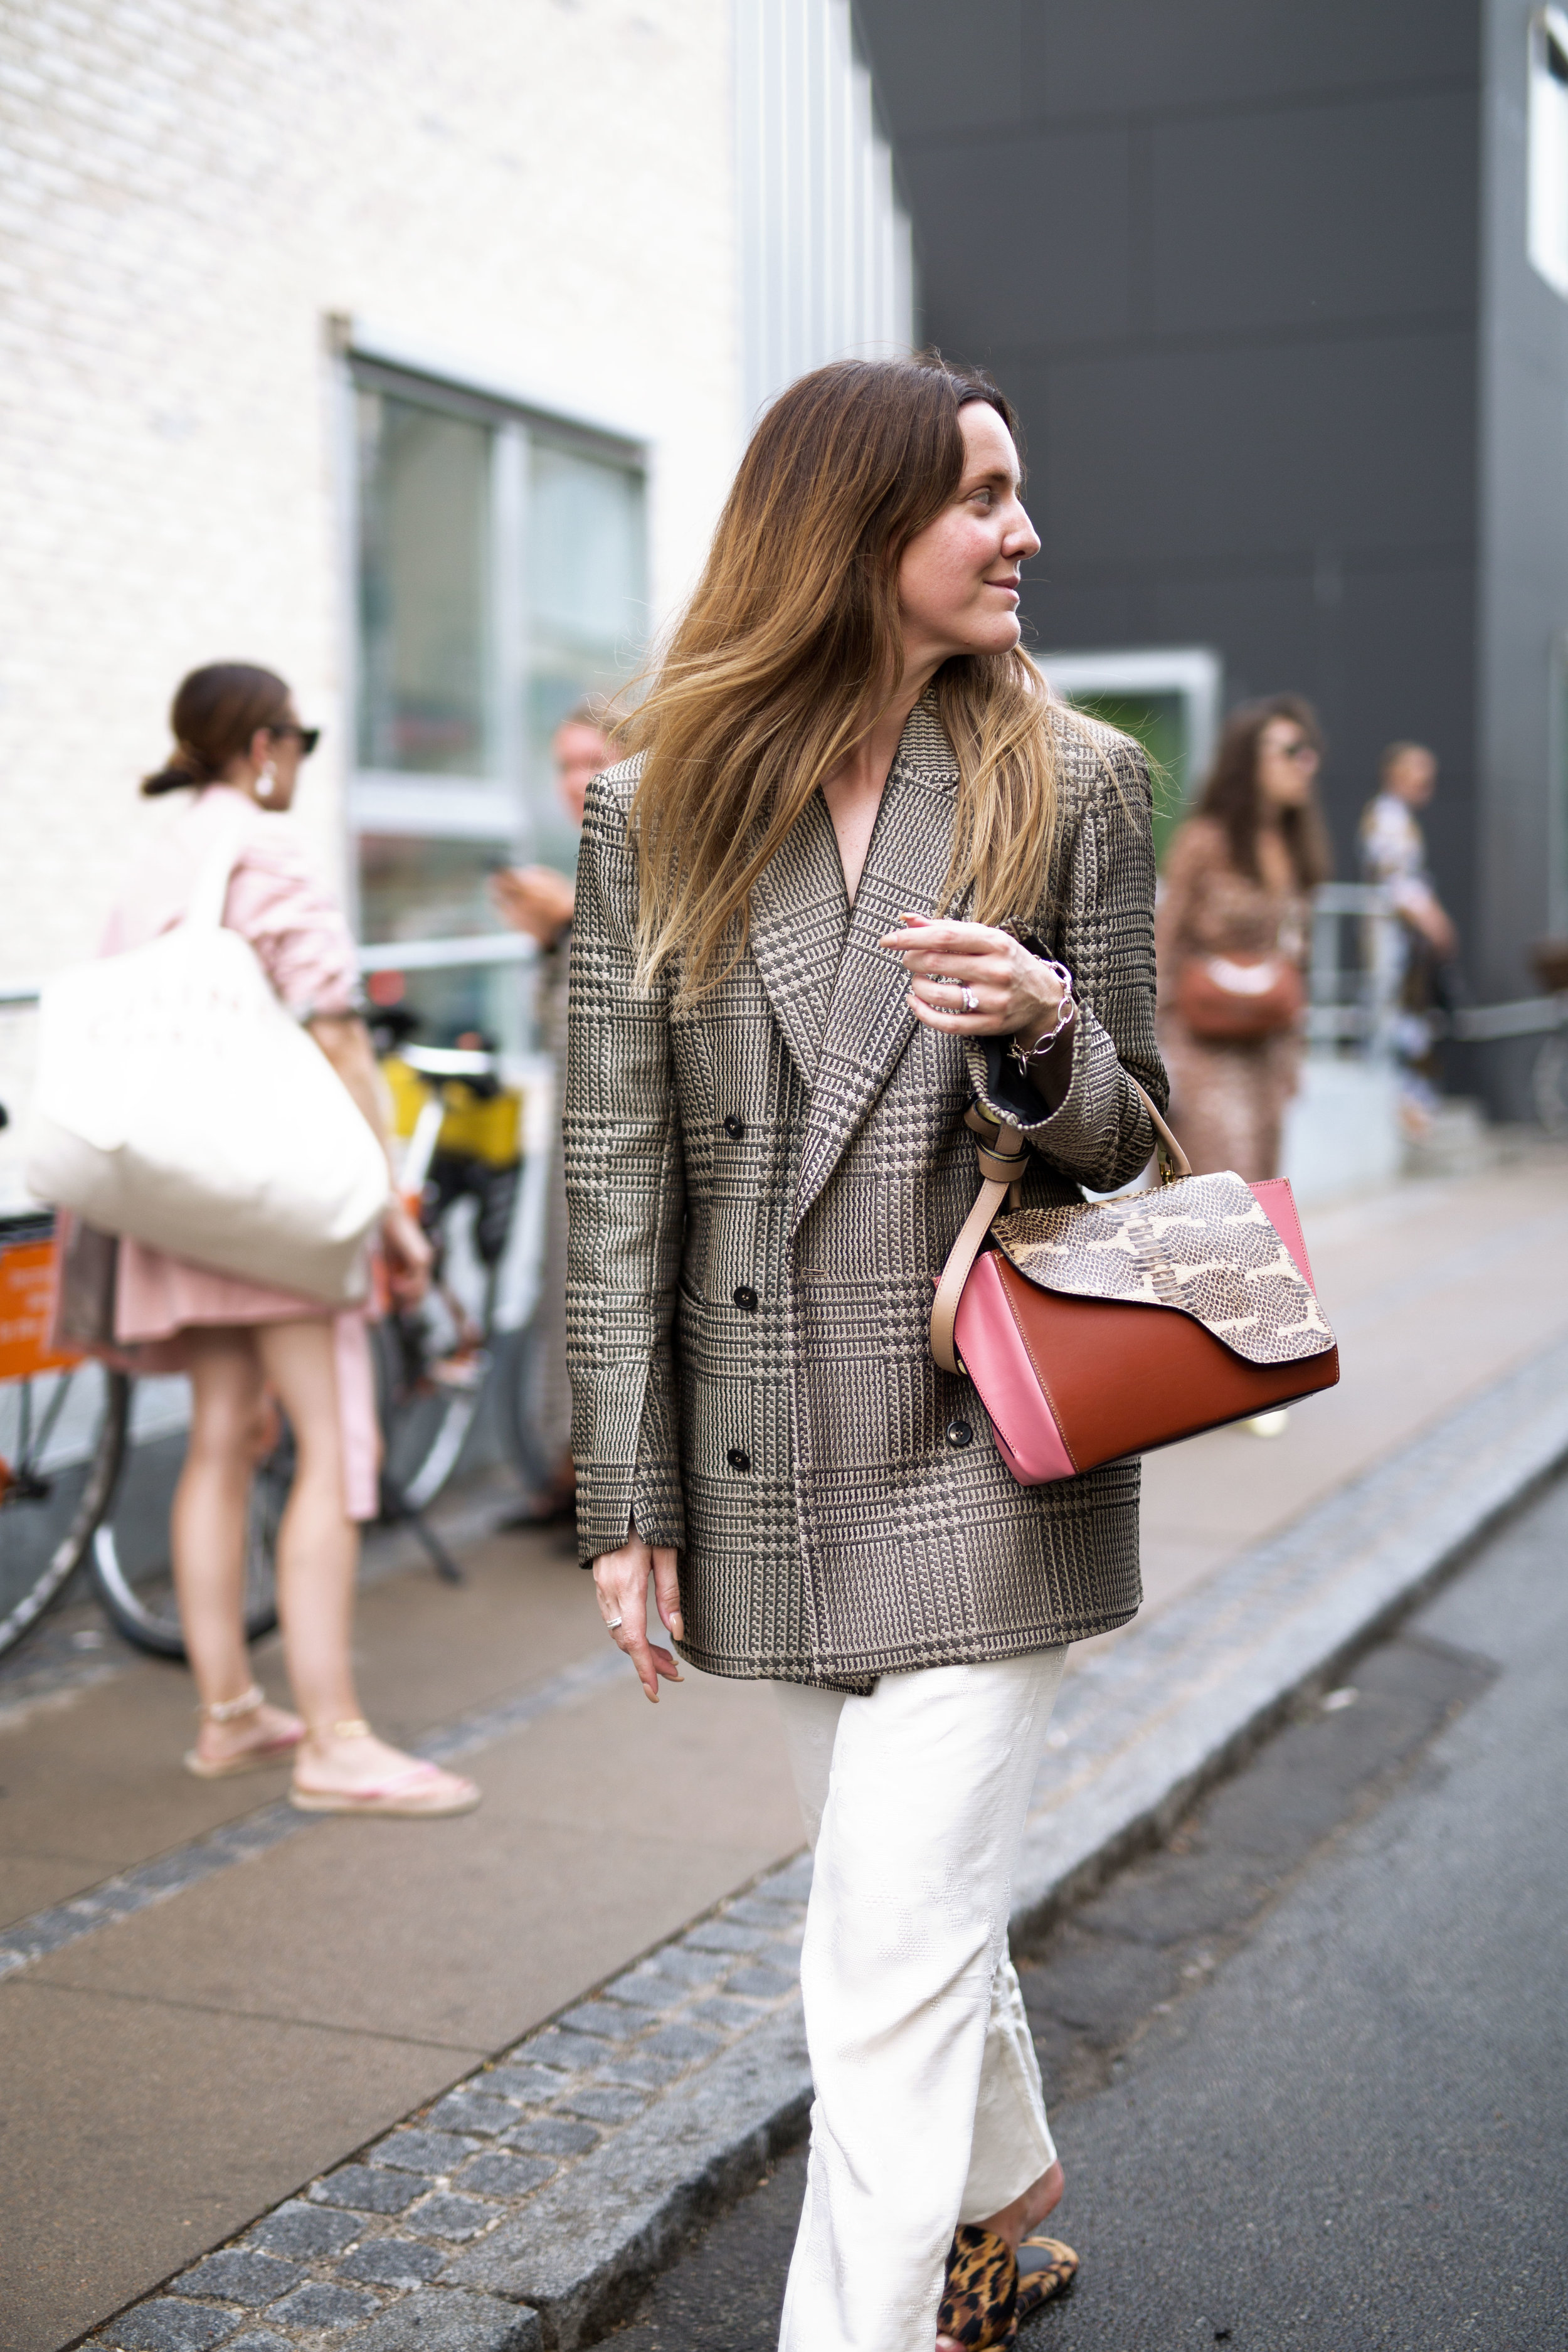 TheStreetland_Copenhagen_Fashion_Week_SS19_68.jpg